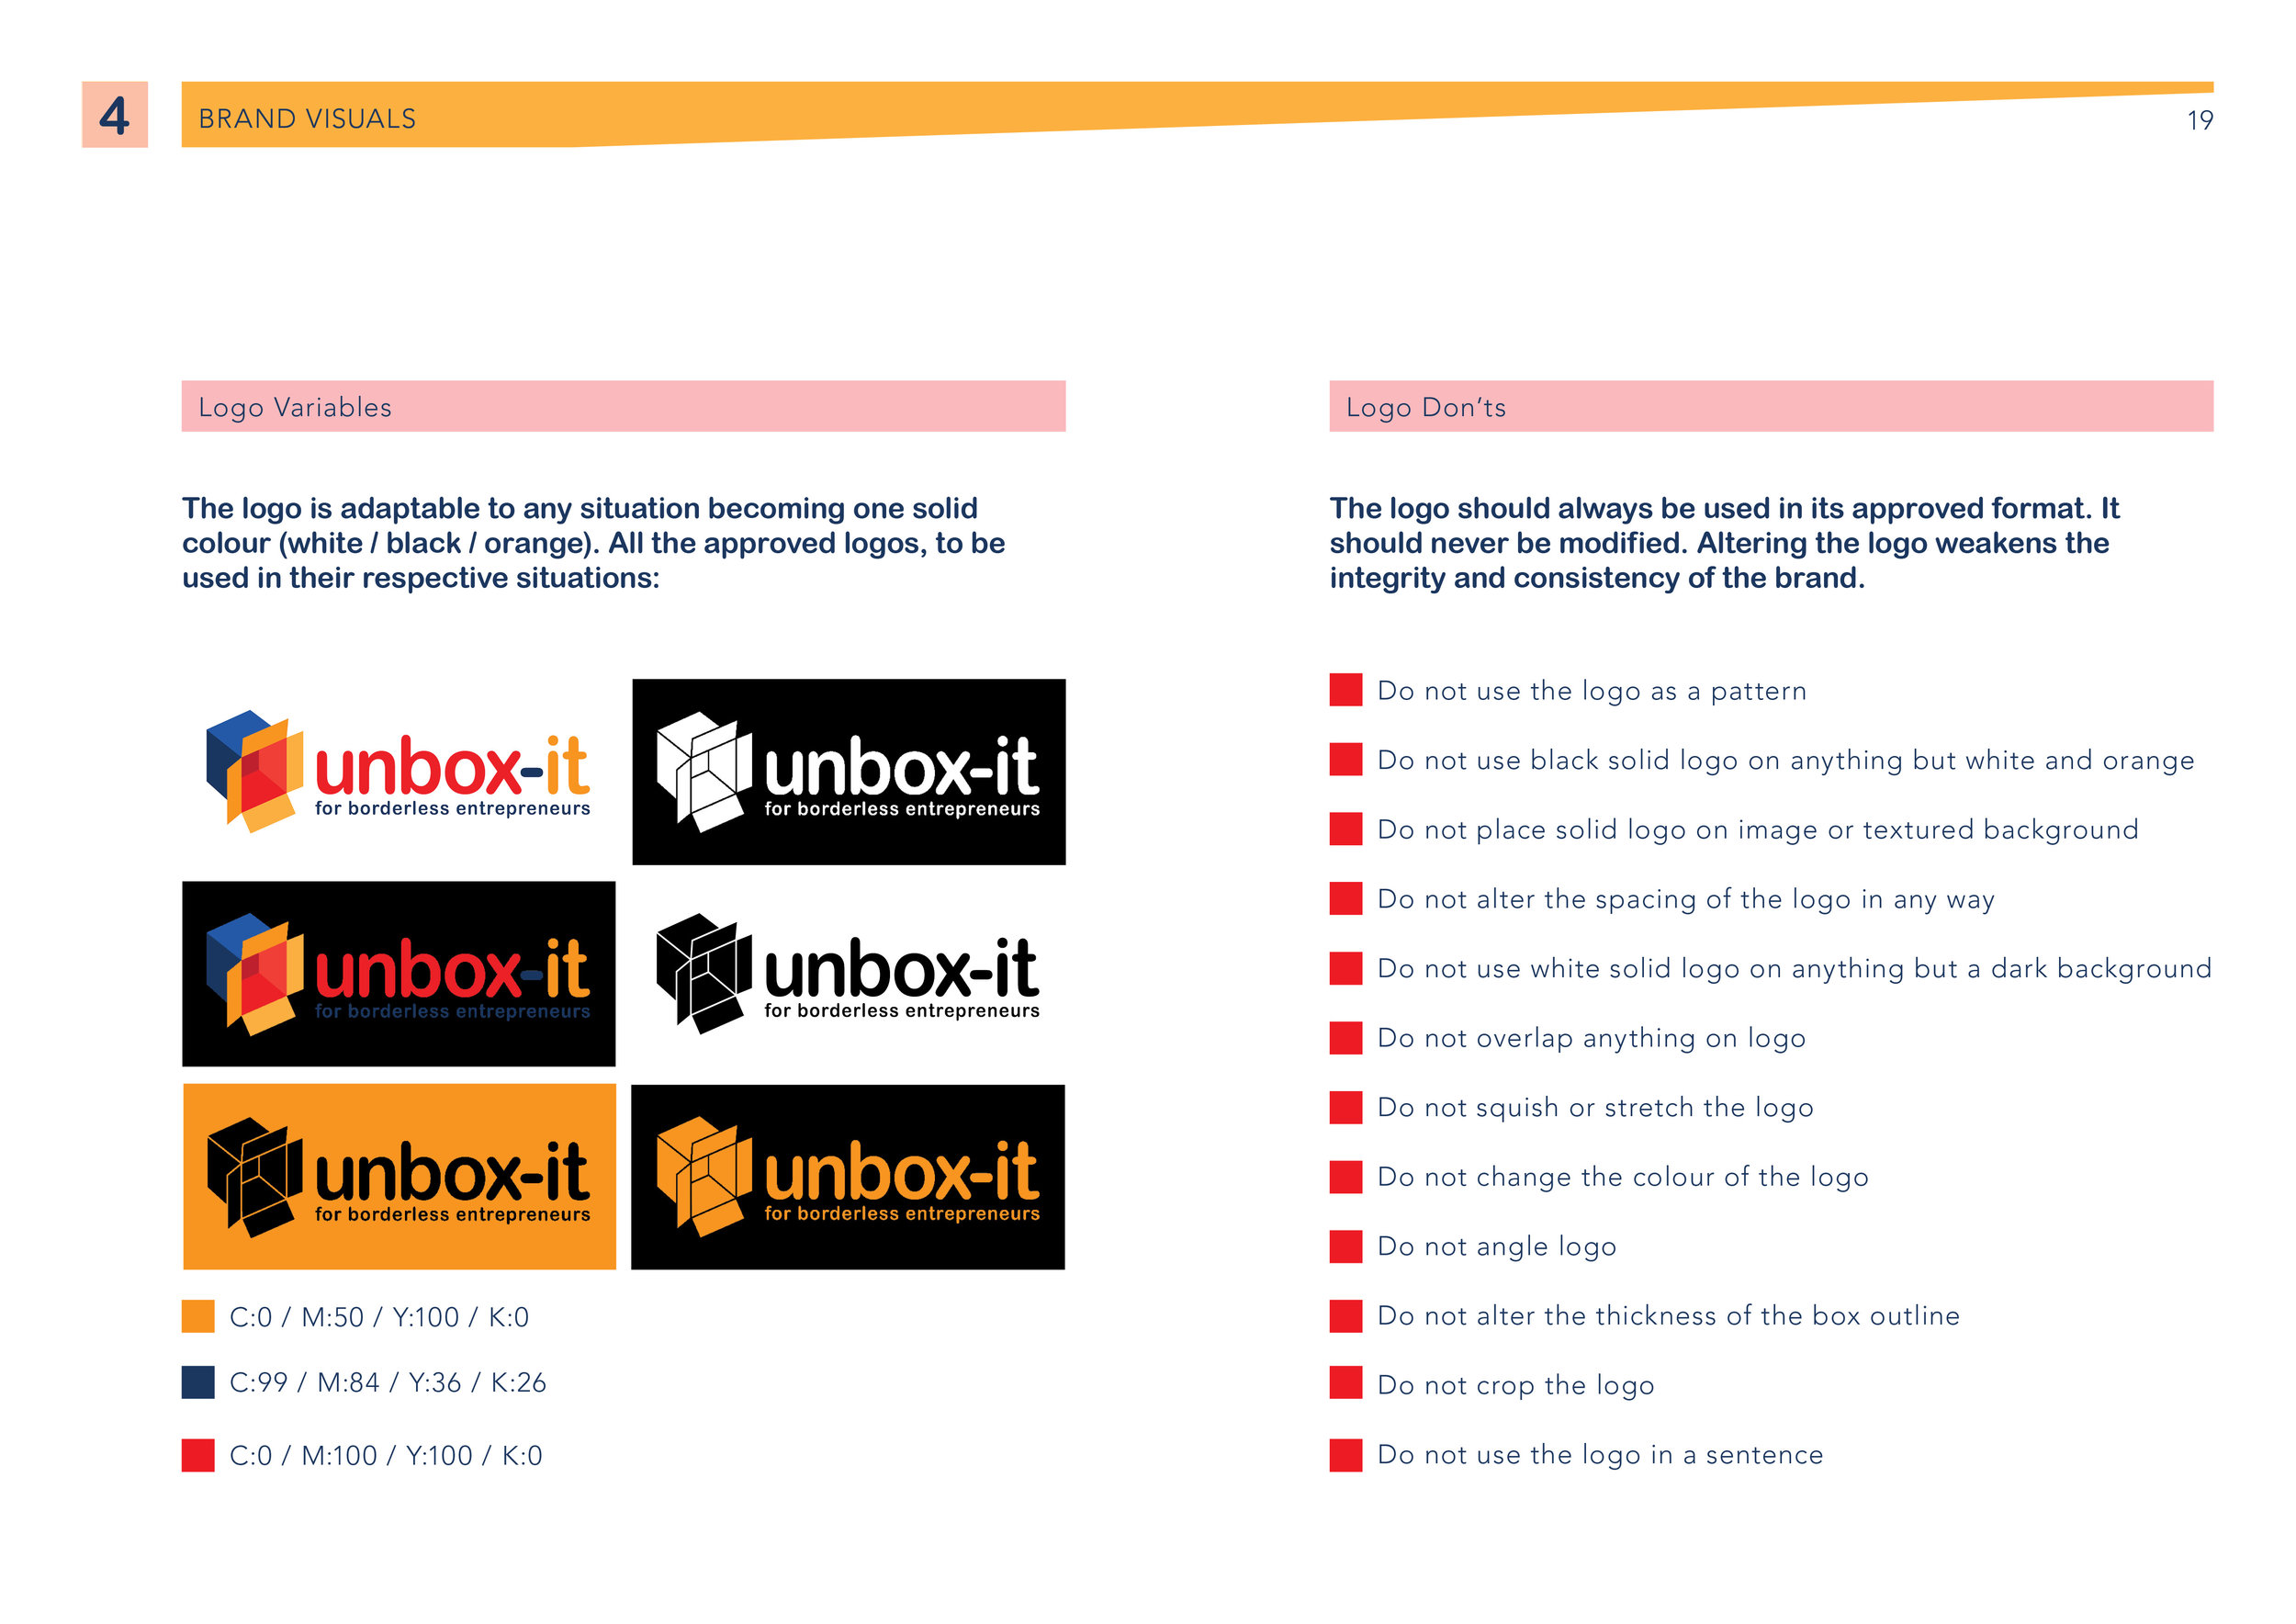 Unbox-it Brand Guidelines10.jpg